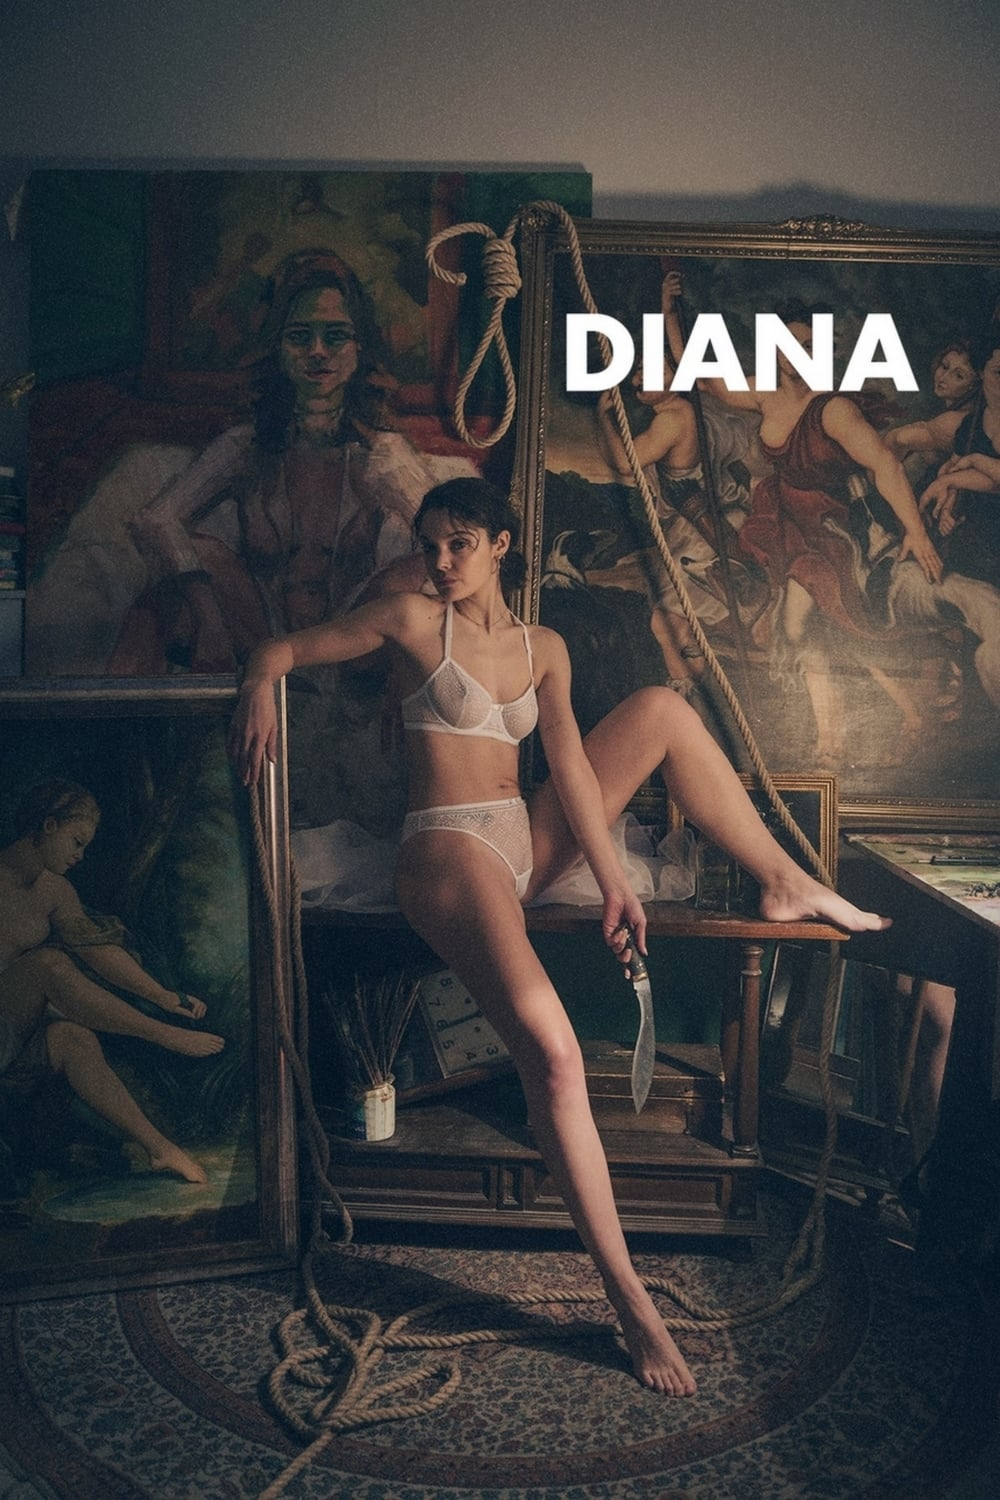 Diana on FREECABLE TV